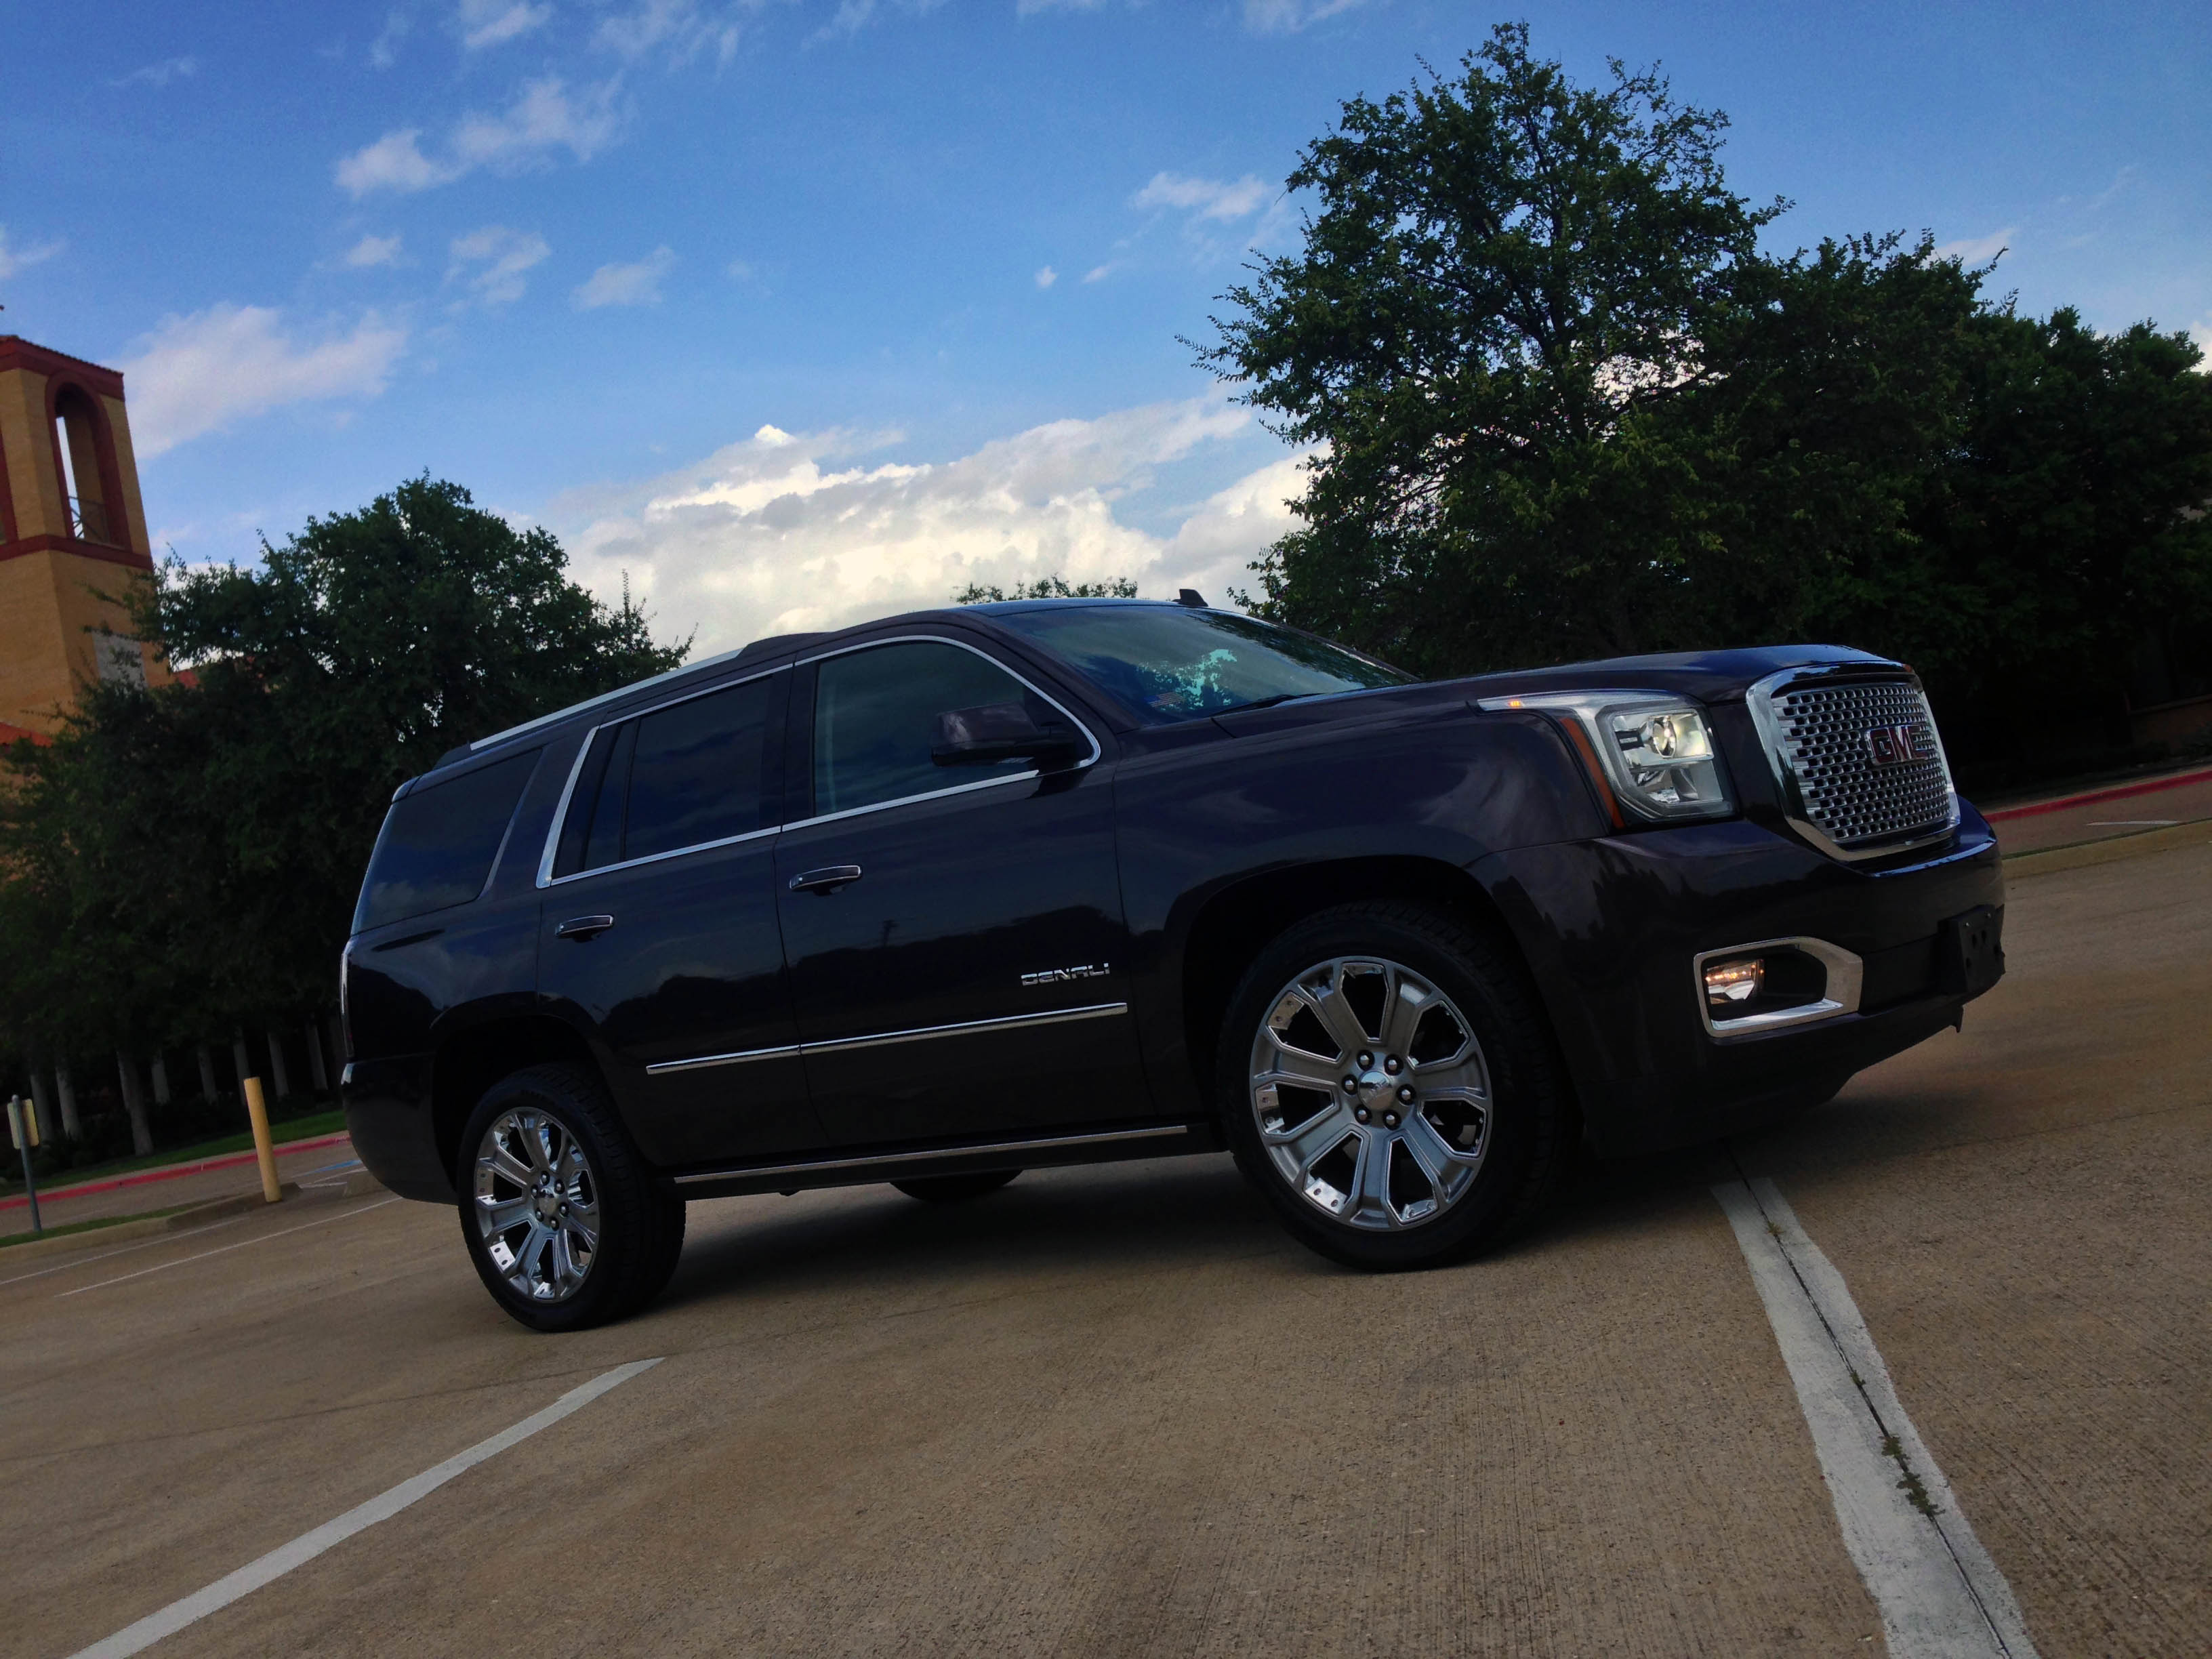 suv for yukon albuquerque photo details in stock nm denali vehicle sale gmc